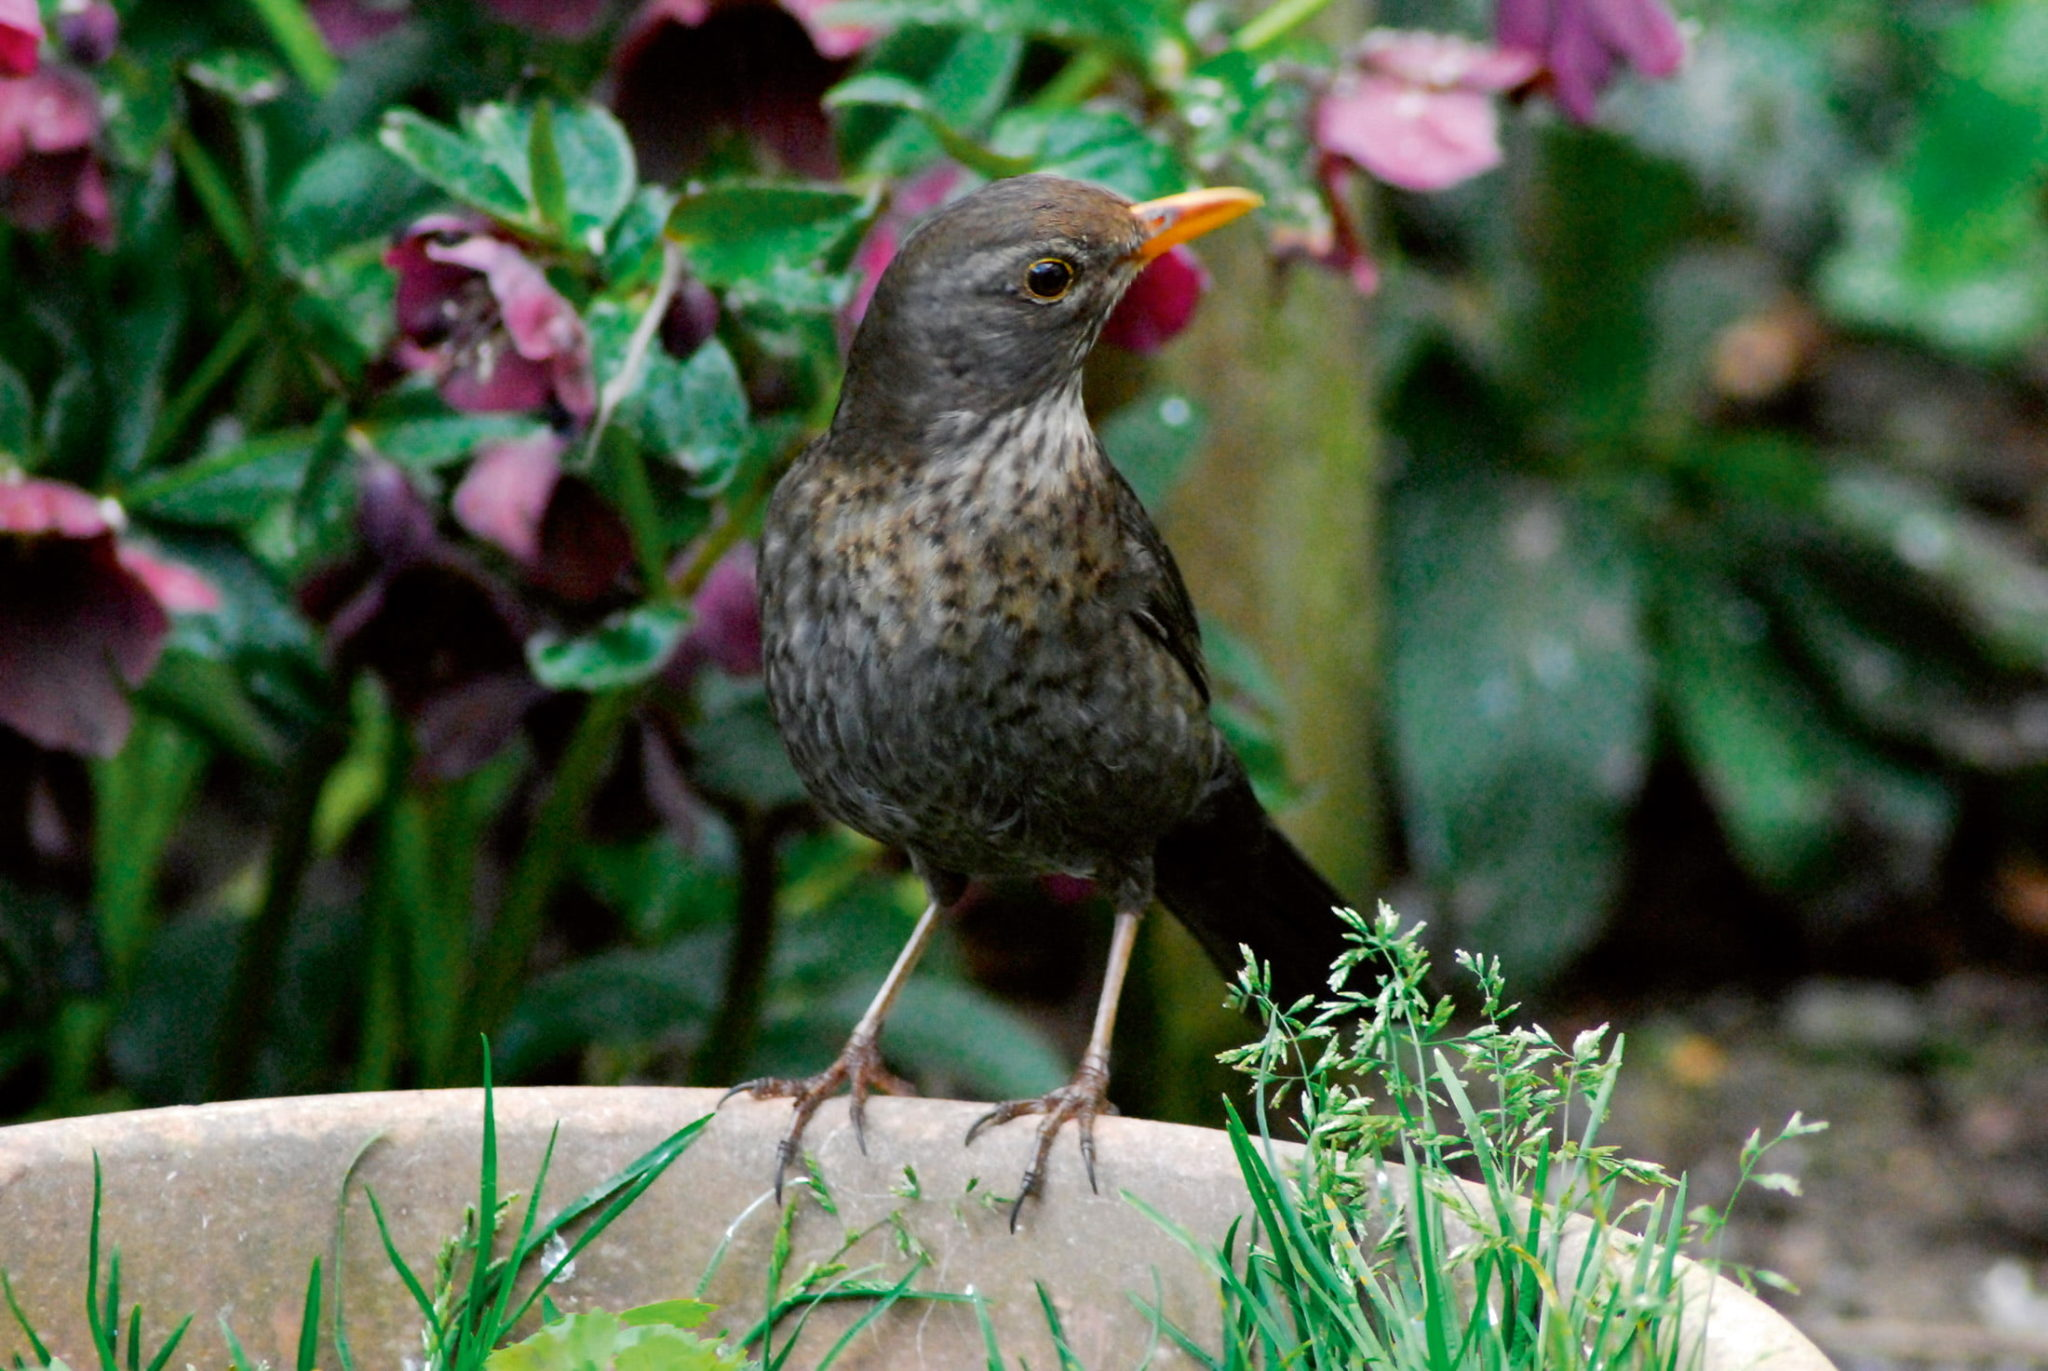 Autumn Bird Care – Nesting and Roosting